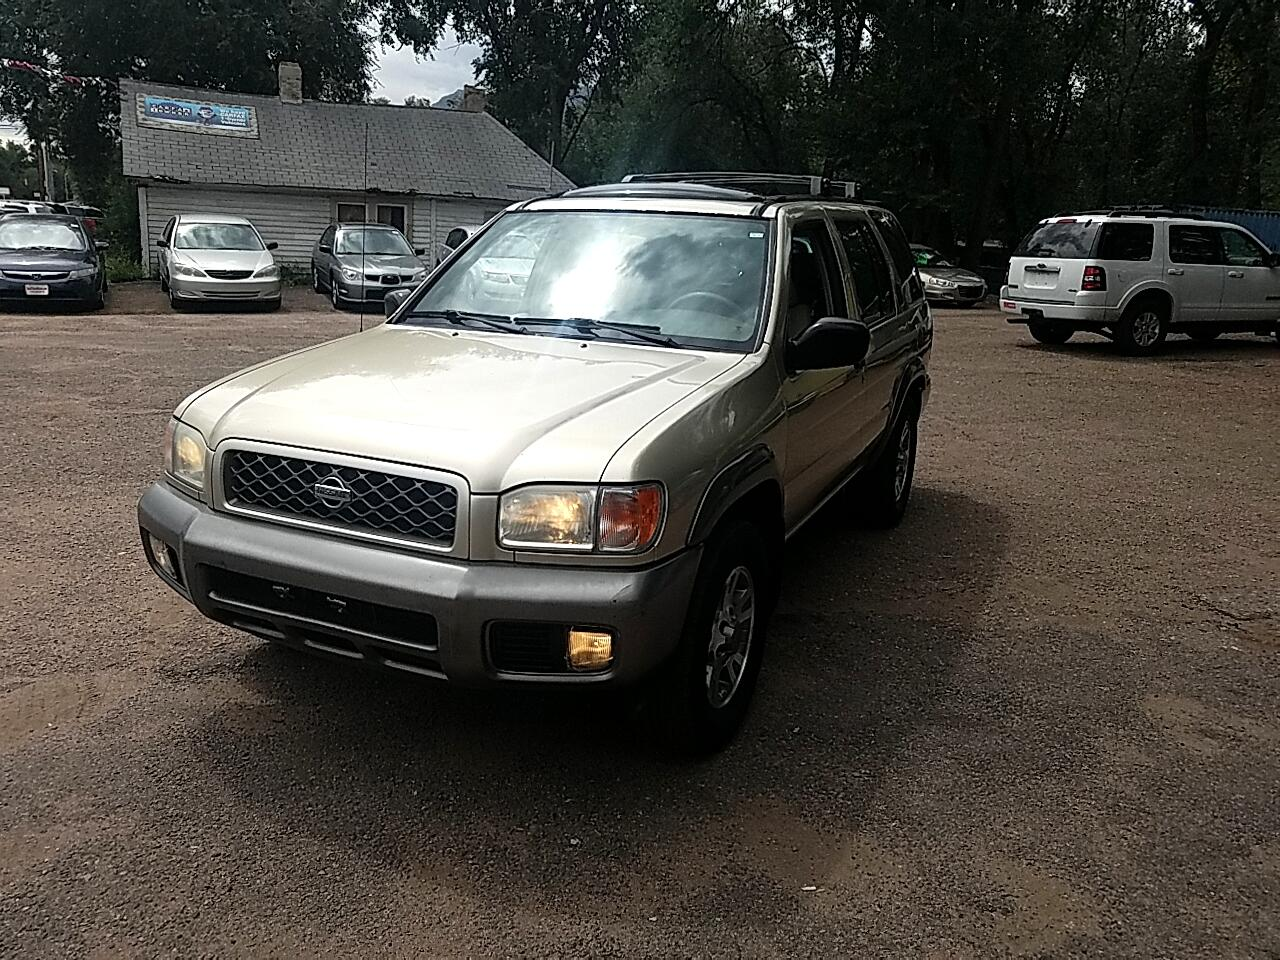 Used 2001 Nissan Pathfinder For Sale In Colorado Springs, CO 80903 South  Tejon Motors